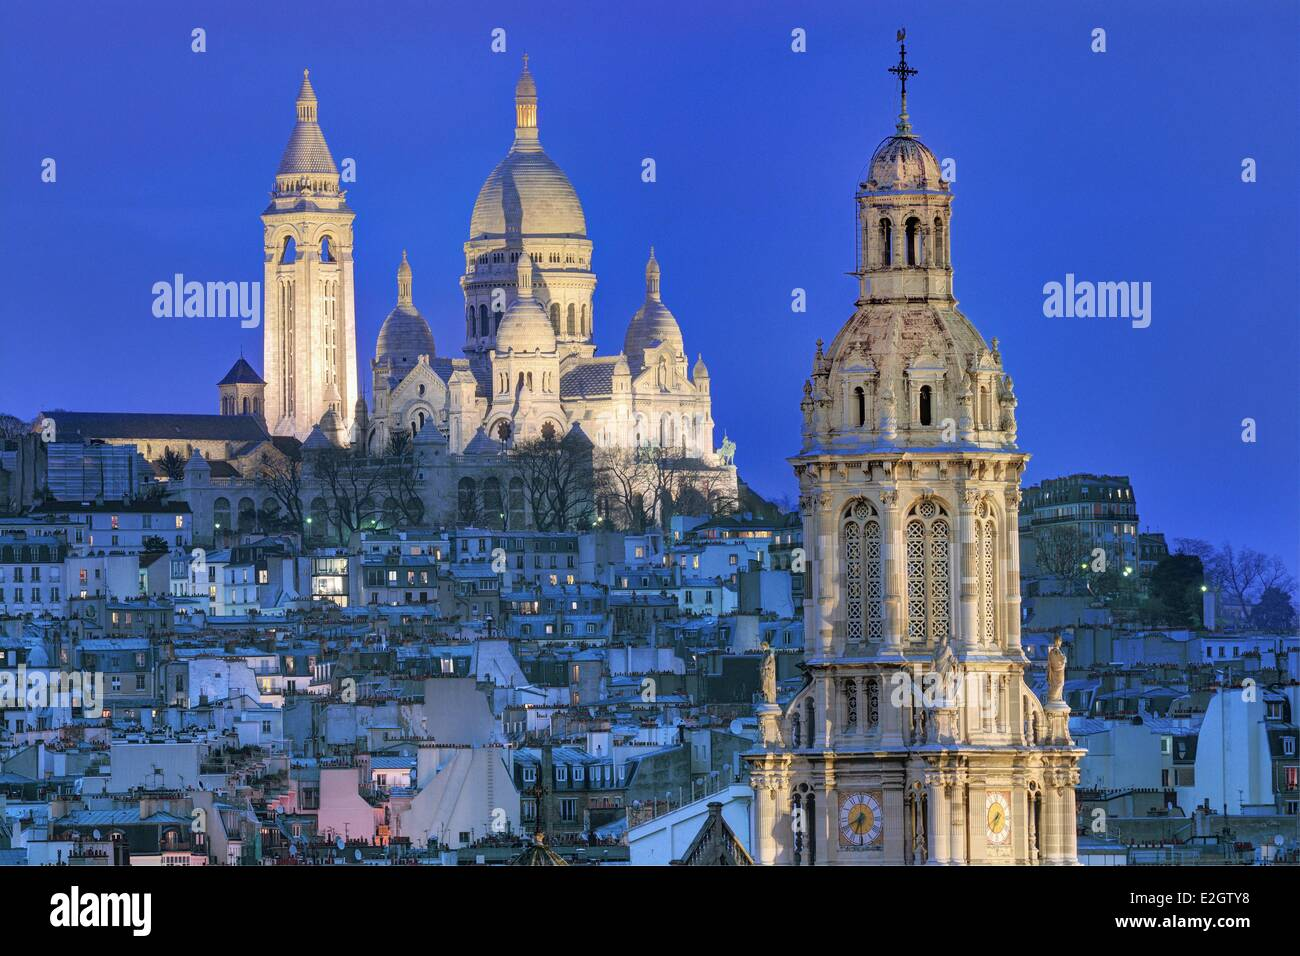 France Paris basilica of Sacre-Coeur of Montmartre and bell-tower of Sainte-Trinite (Holy Trinity) church - Stock Image